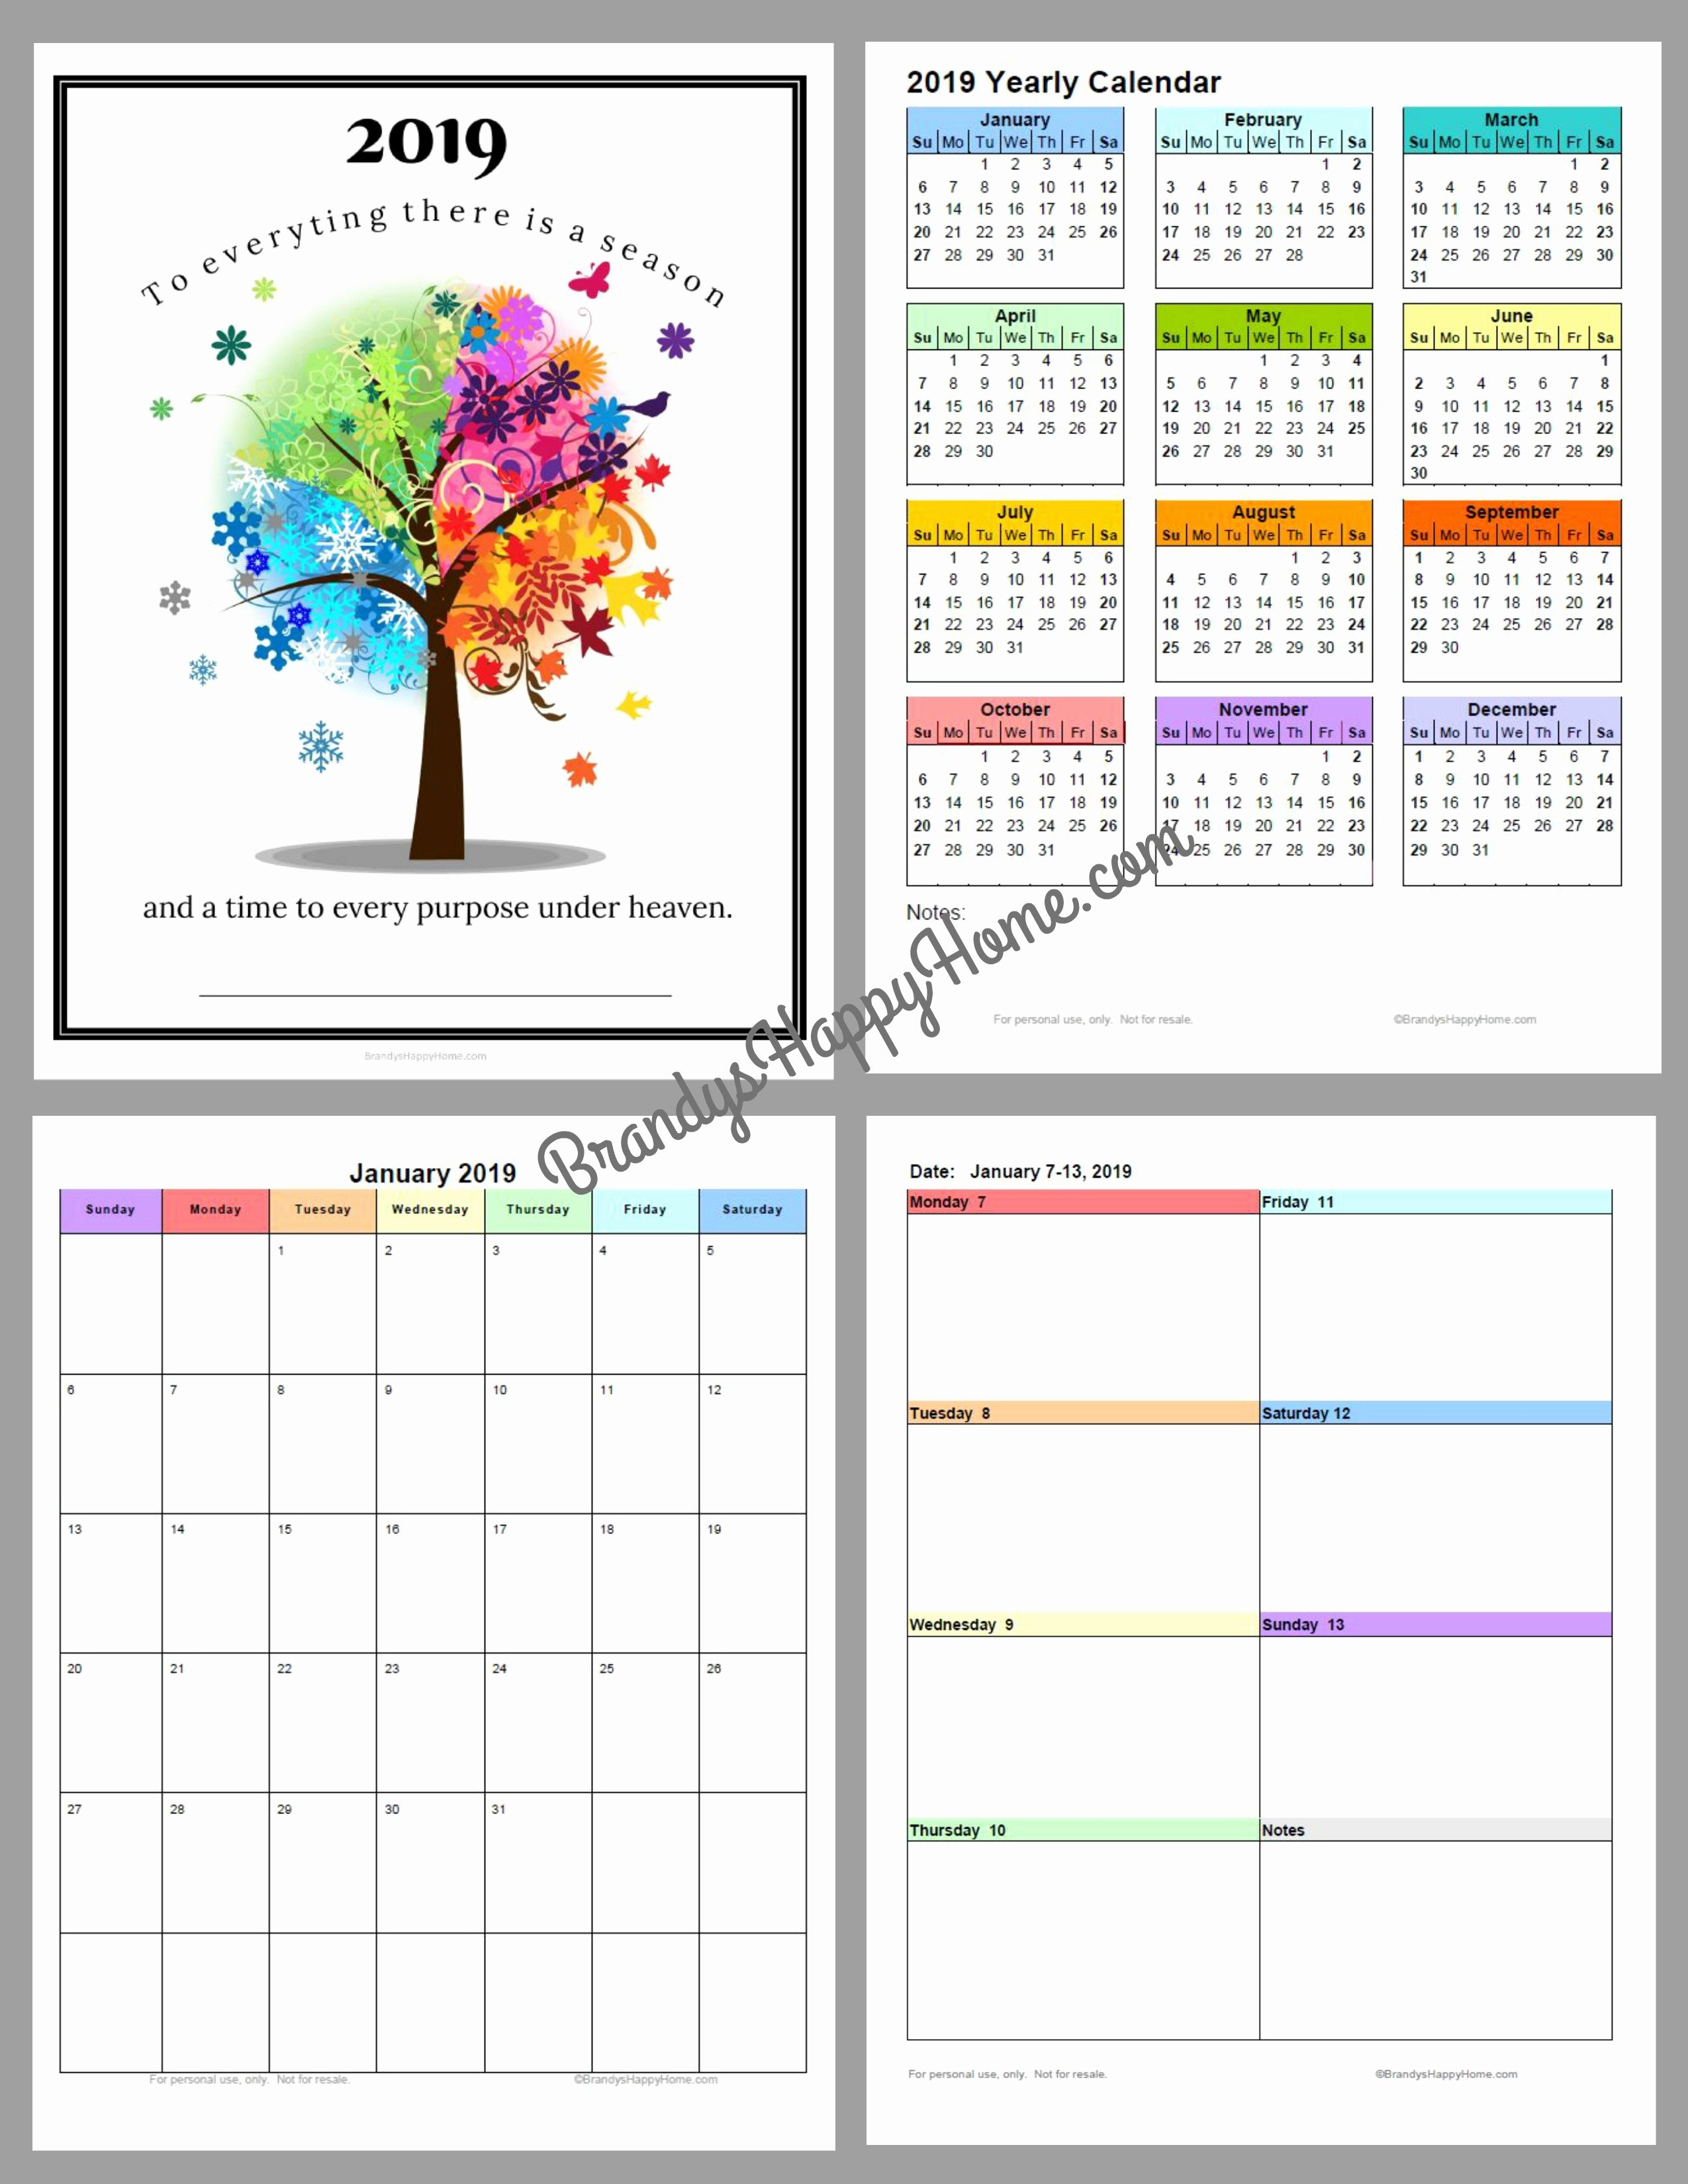 Printable Daily Planner 2019 Awesome Free 2019 Diy Calendar Planner Printables